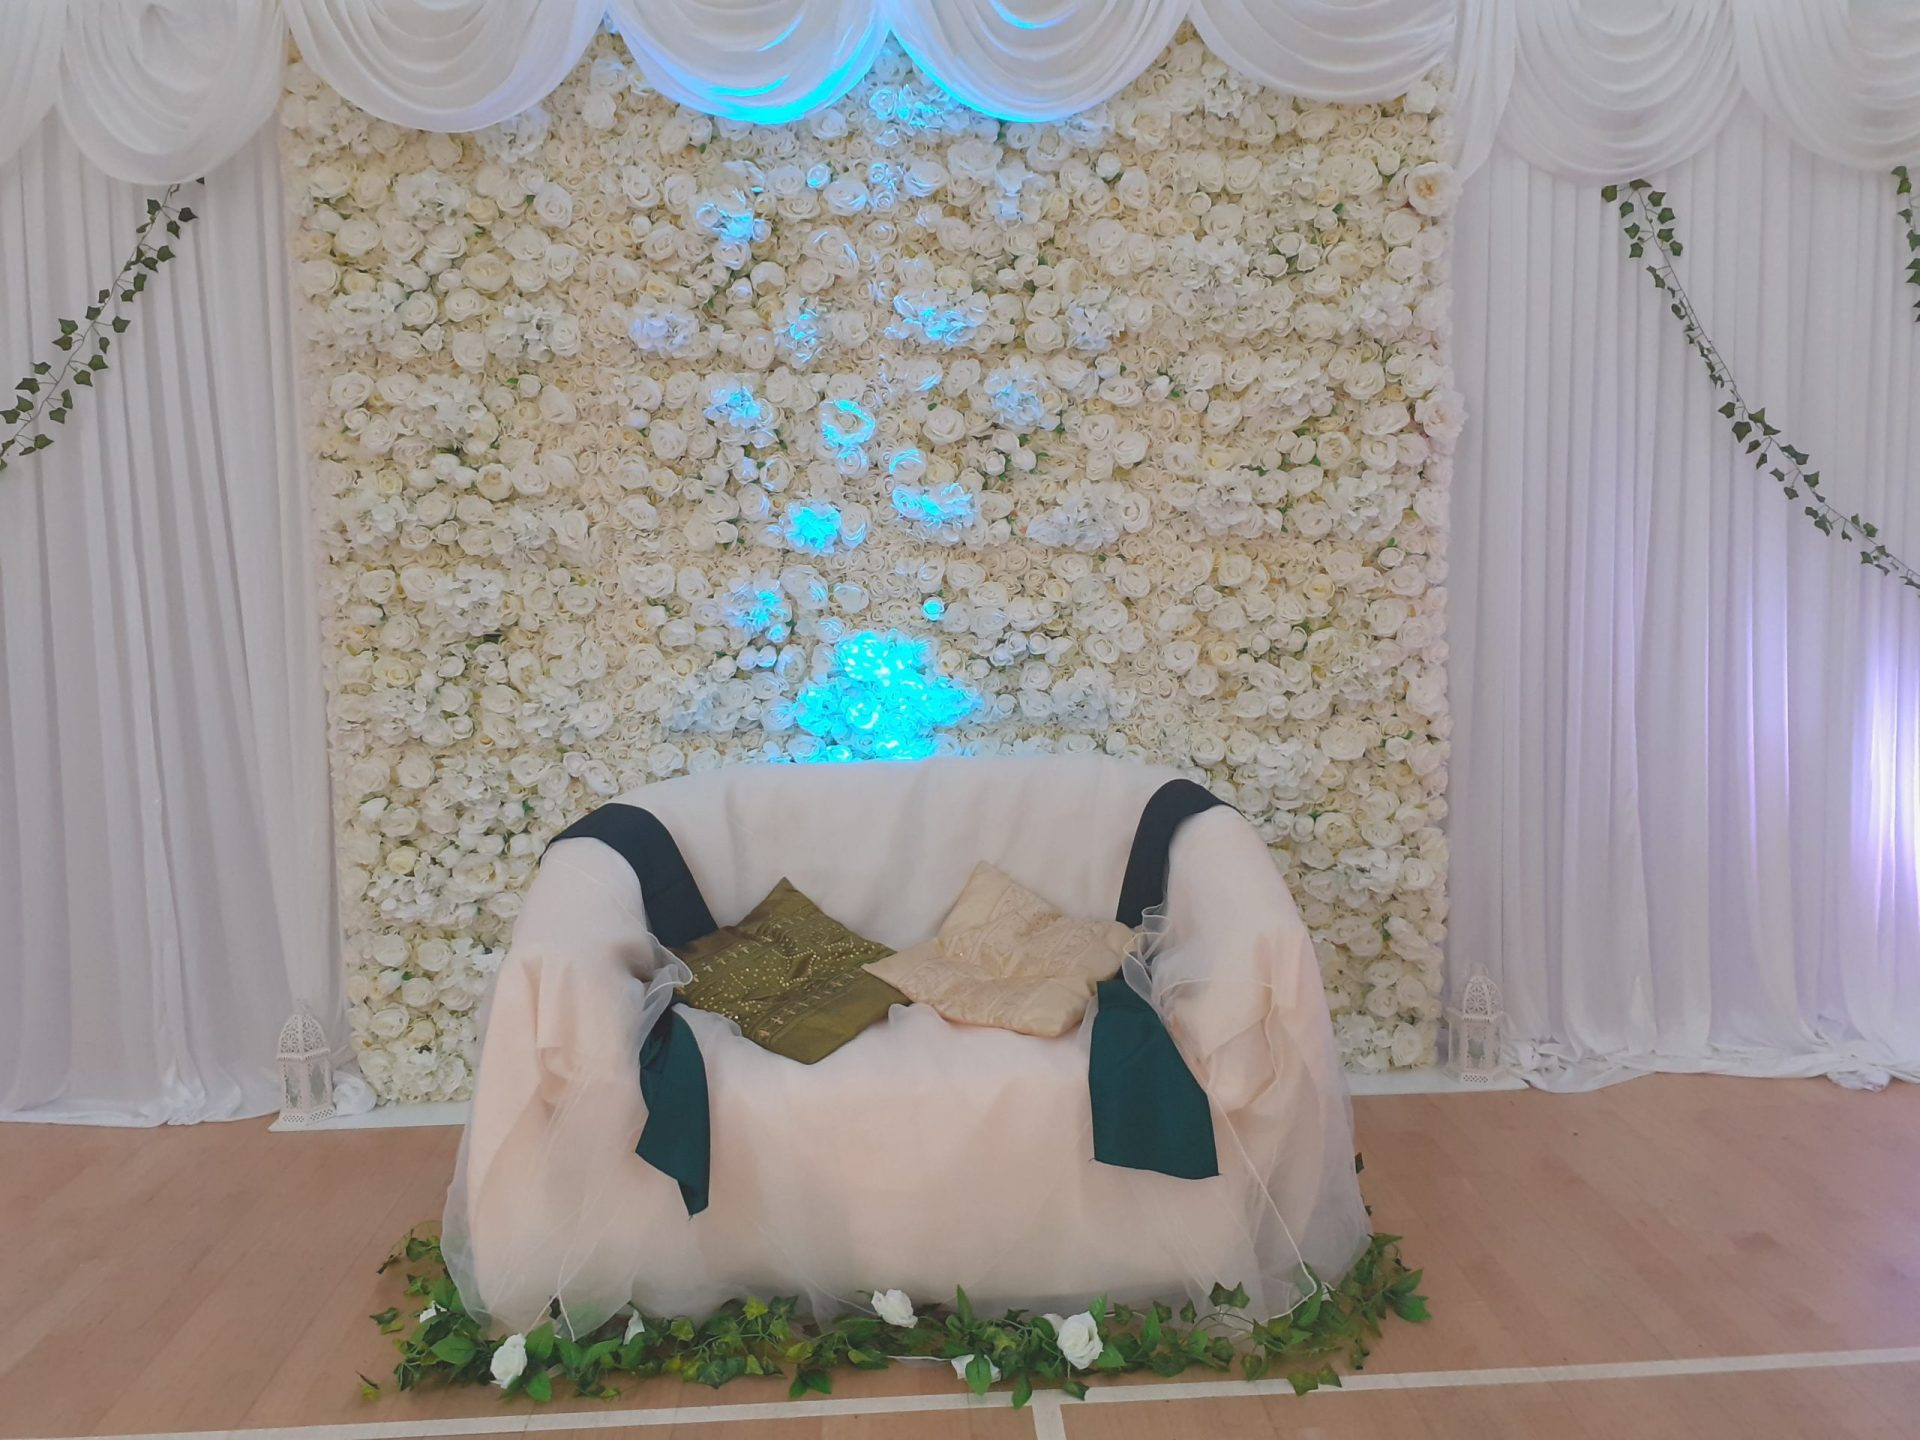 Decorated Chair with Backdrop and Flower Wall with Giant Gestures